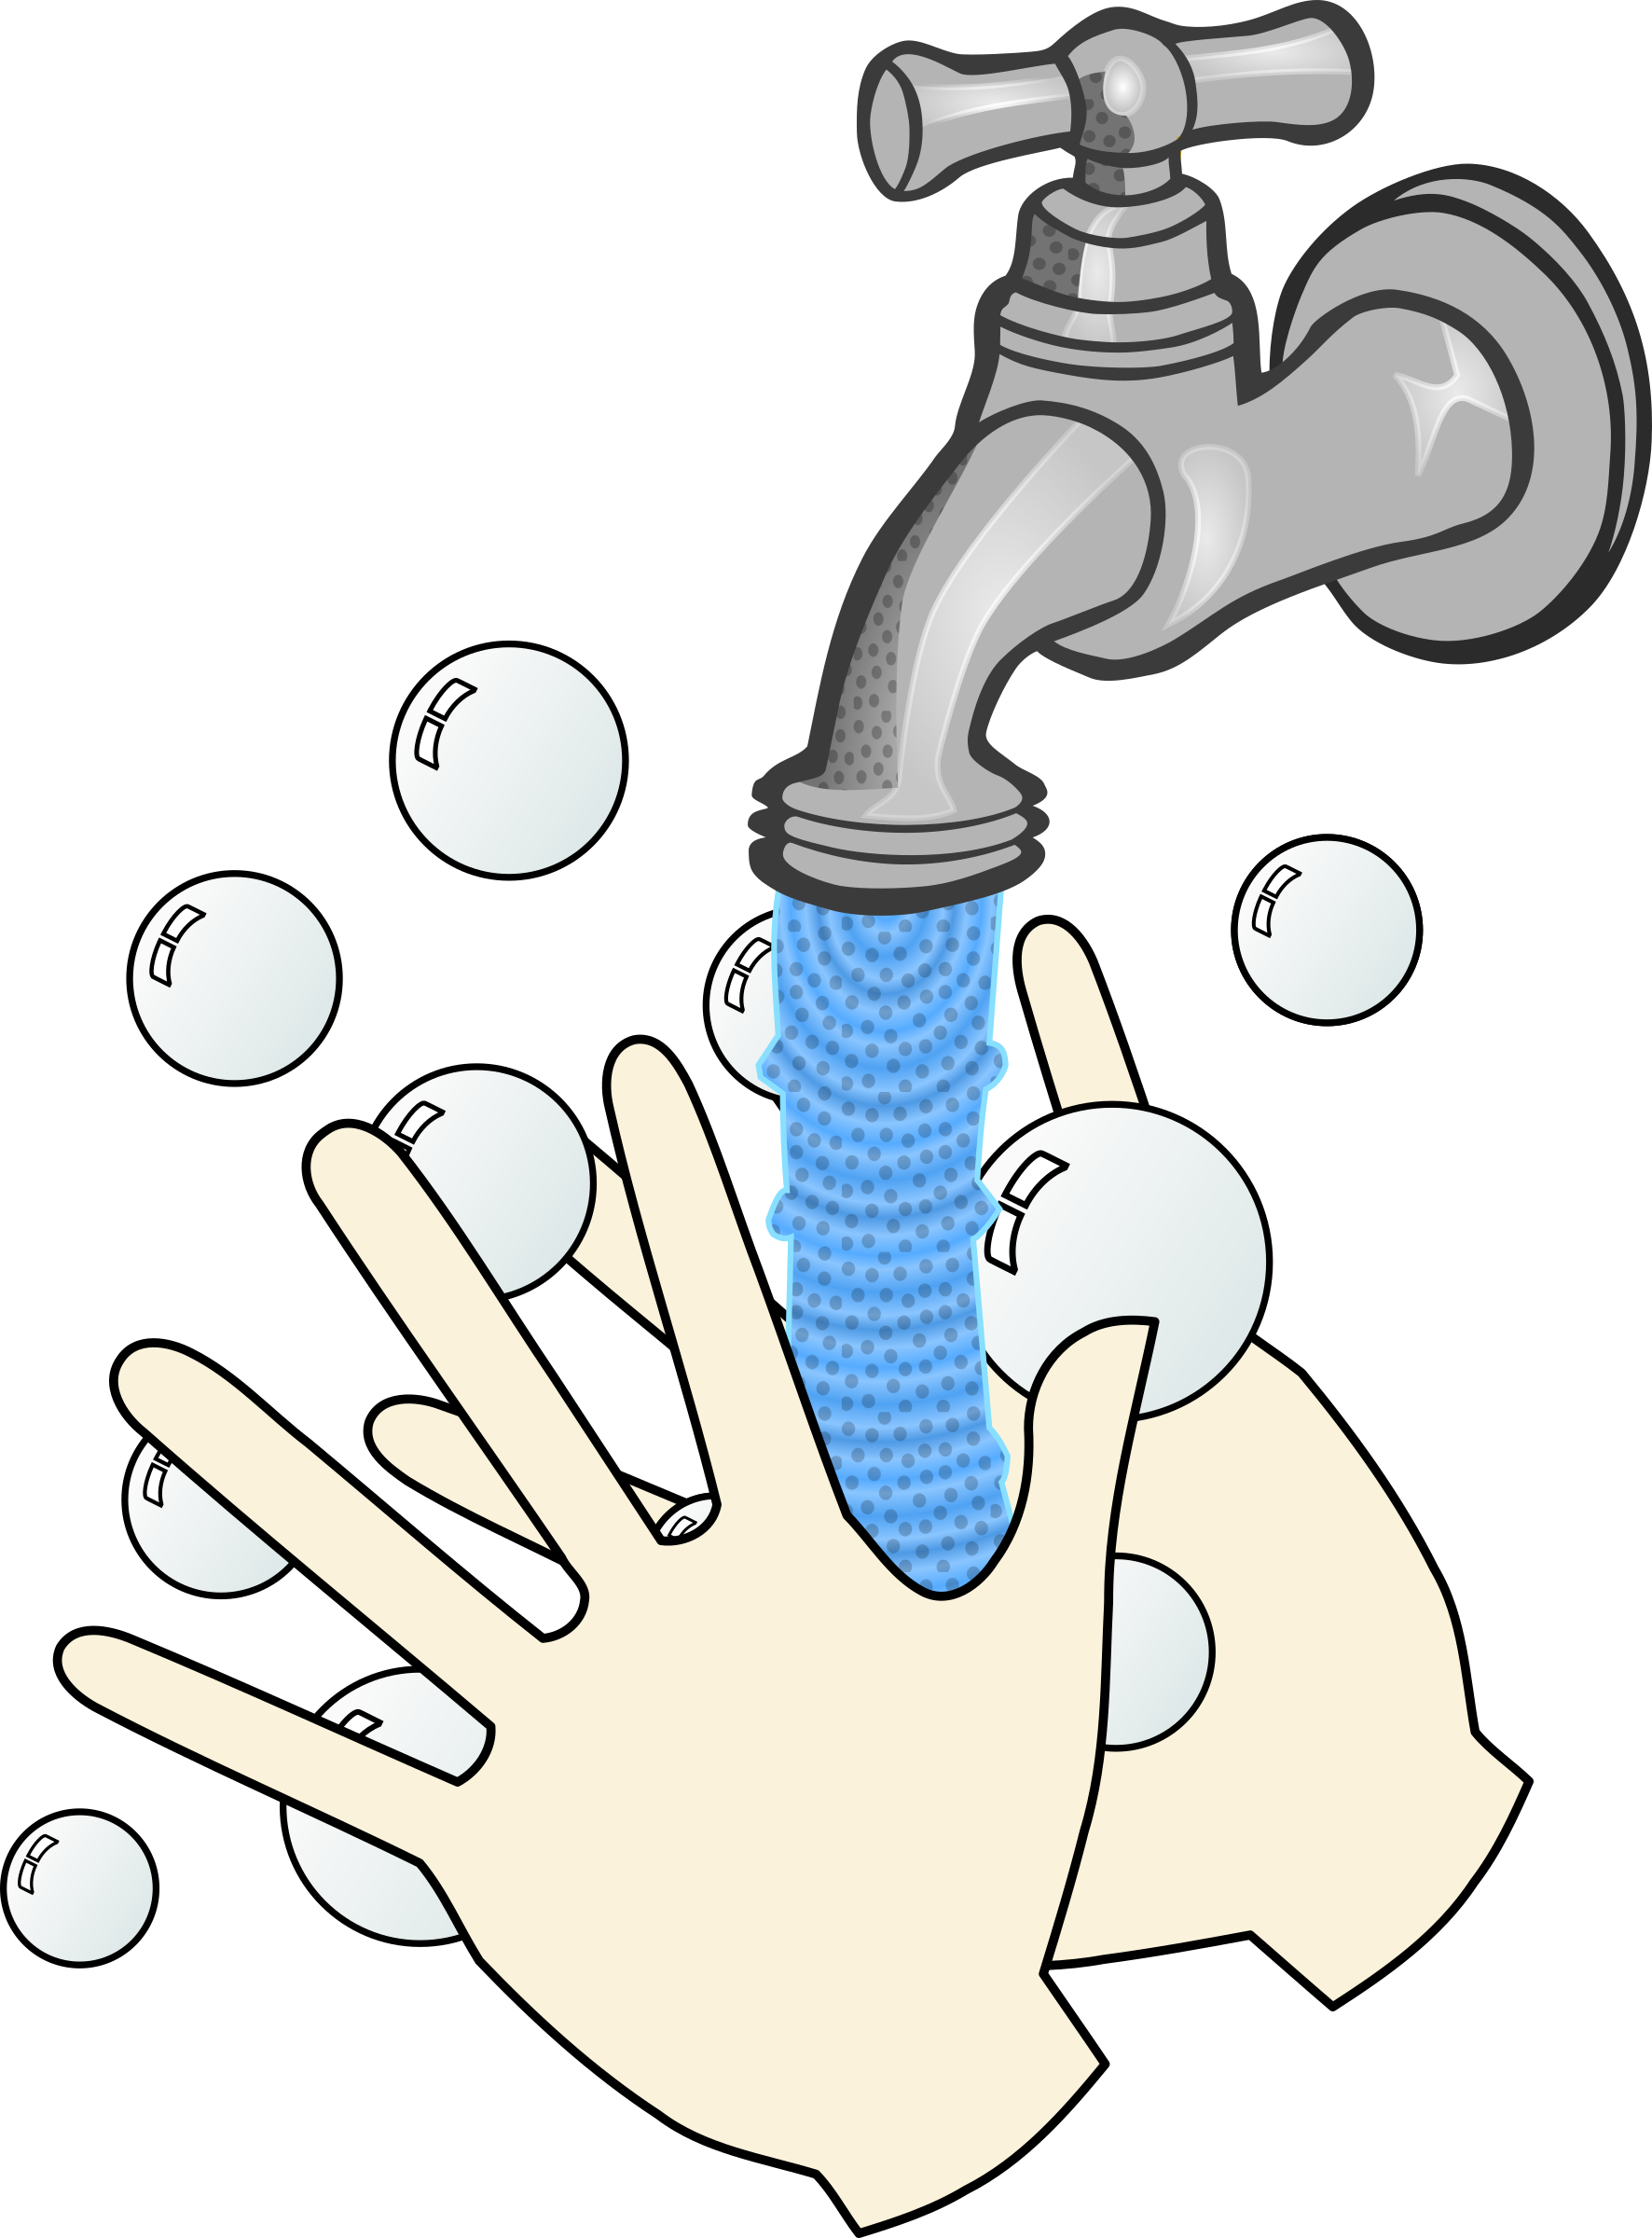 Hand washing clipart transparent download Clipart - washing hands with soap and running water transparent download